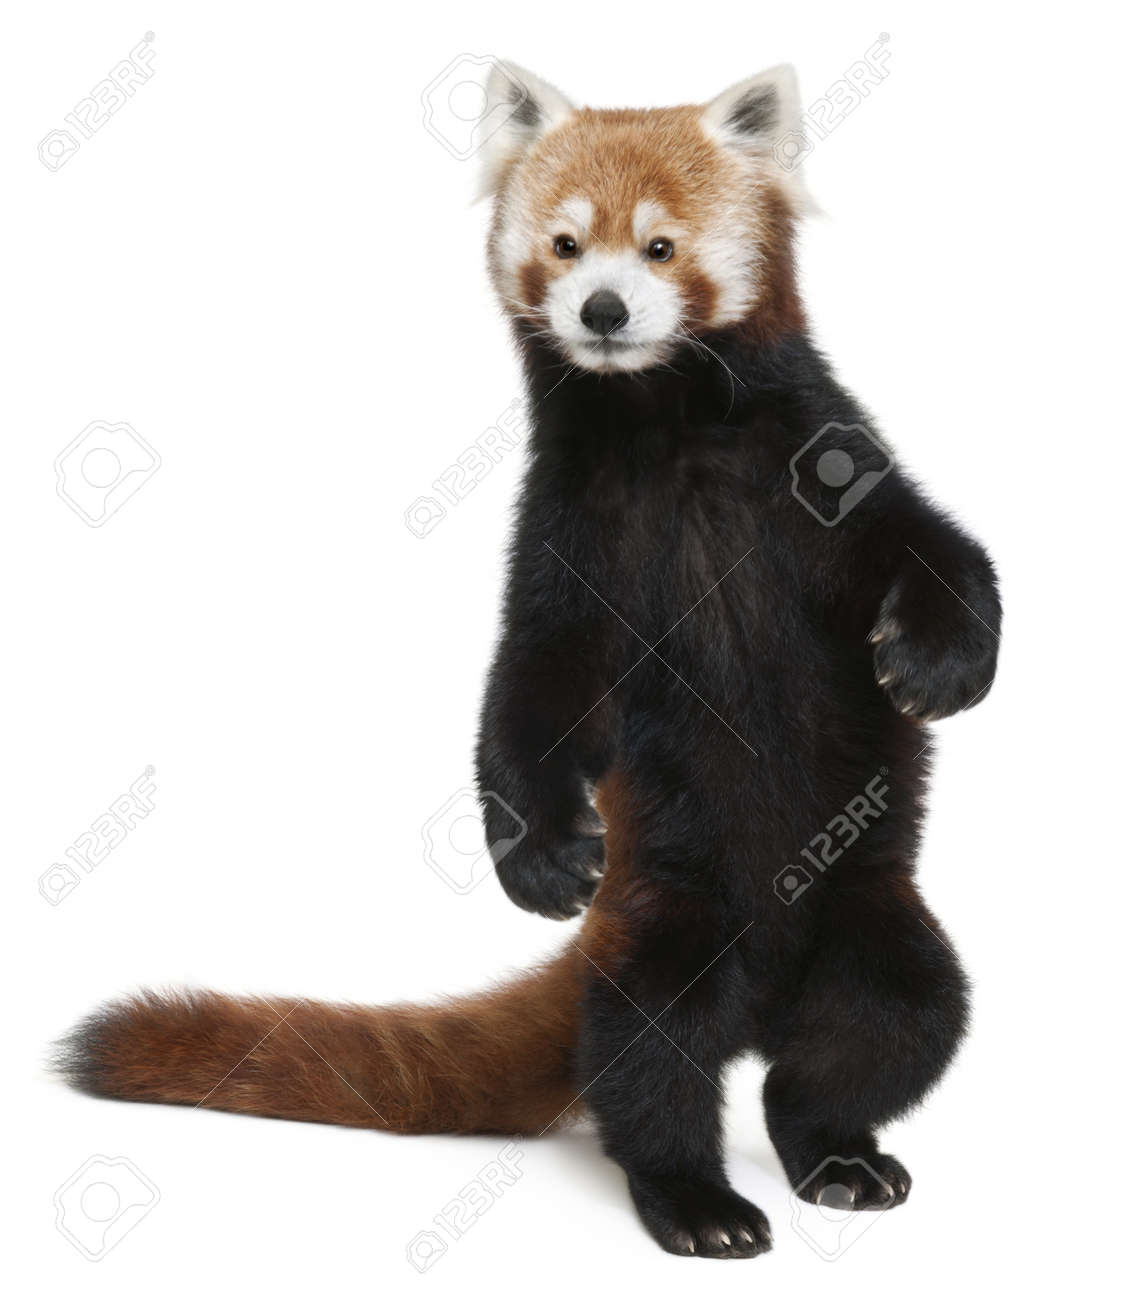 Old Red panda or Shining cat, Ailurus fulgens, 10 years old, walking in front of white background - 8649801